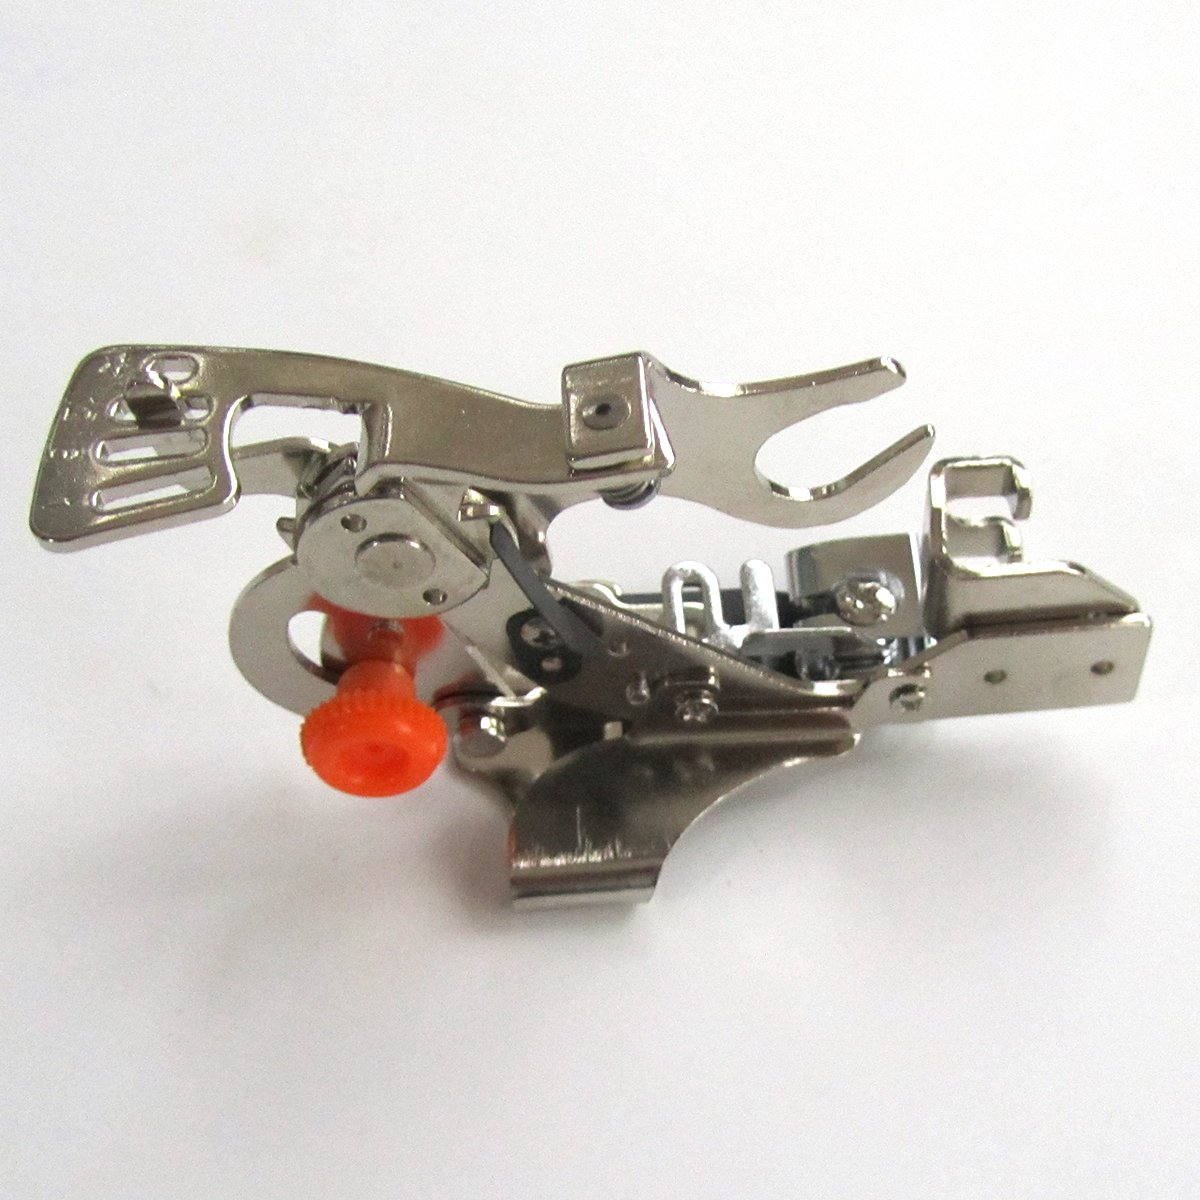 Kunpeng Ruffler Foot For Low Shank Sewing Machine Brother Singer Necchi 4795 Threading Diagram Janome Kenmore Juki Babylock 55705 Home Kitchen